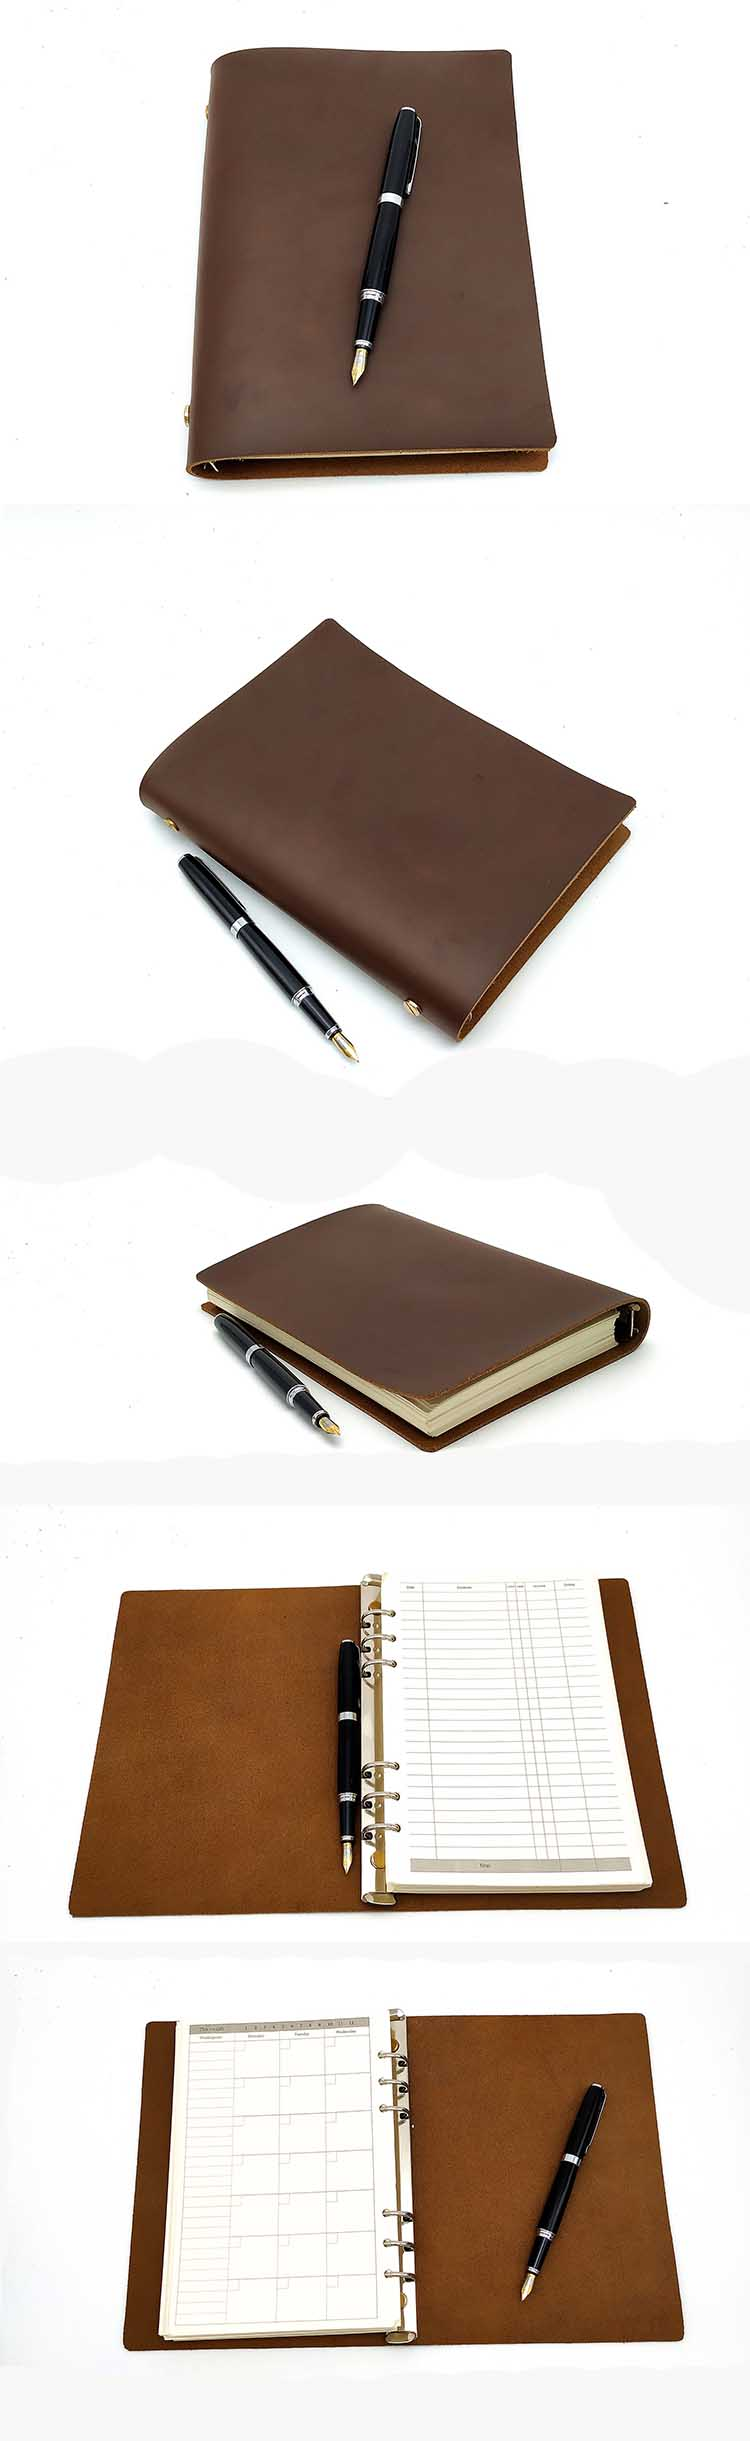 A6 Crazy Horse Leather Diary Notebook Crazy Horse Leather Cover Notebook New Promotion Travelers Journal Notebook